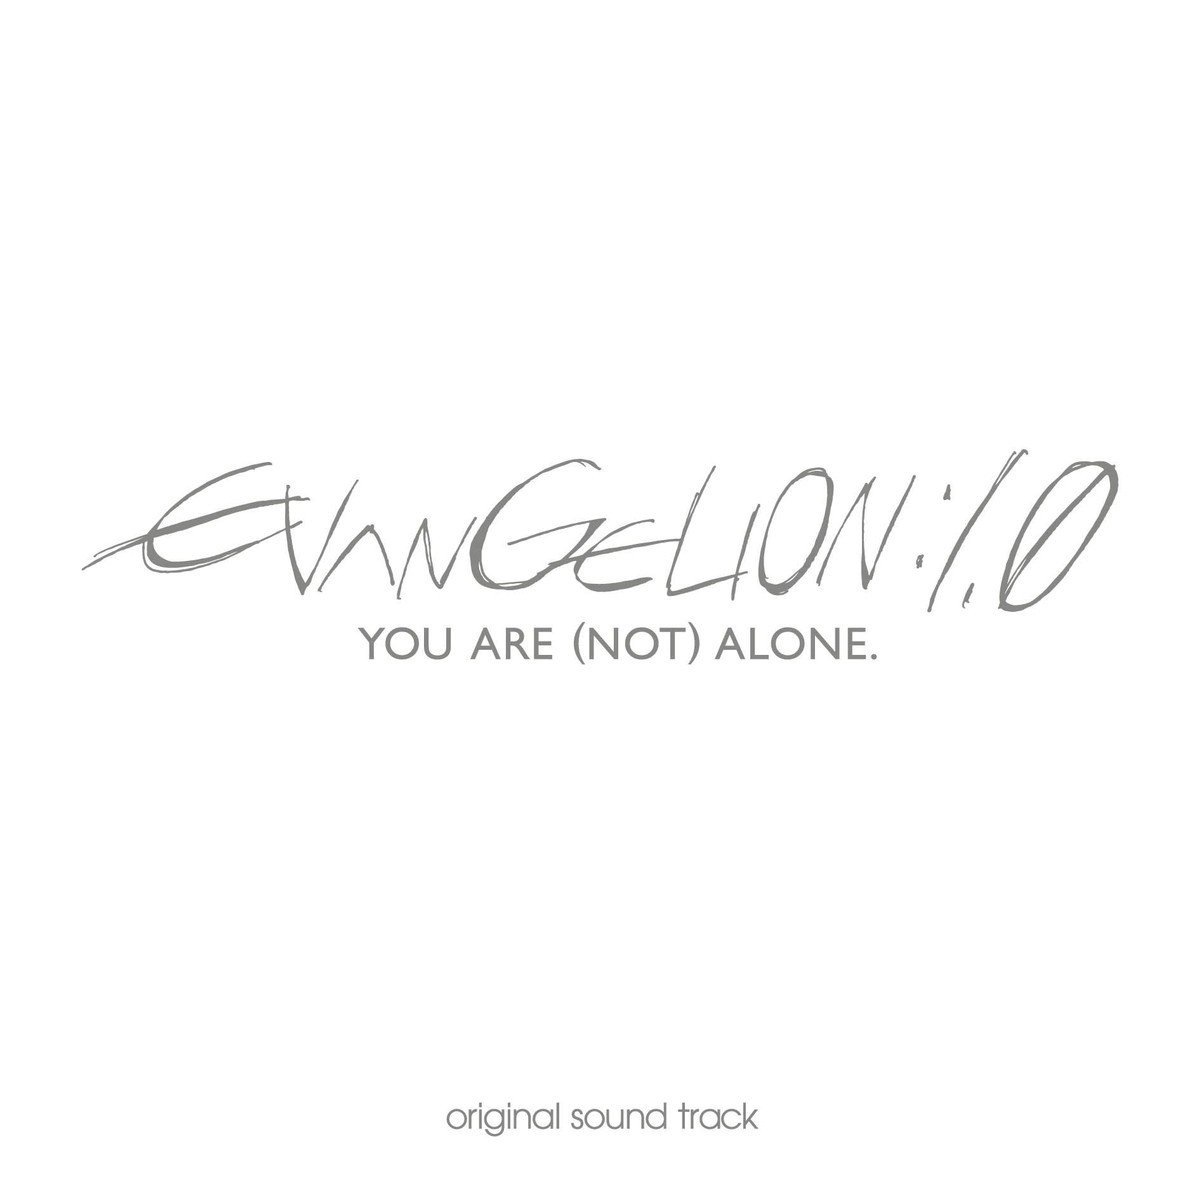 EVANGELION:1.0 YOU ARE (NOT) ALONE. original sound track